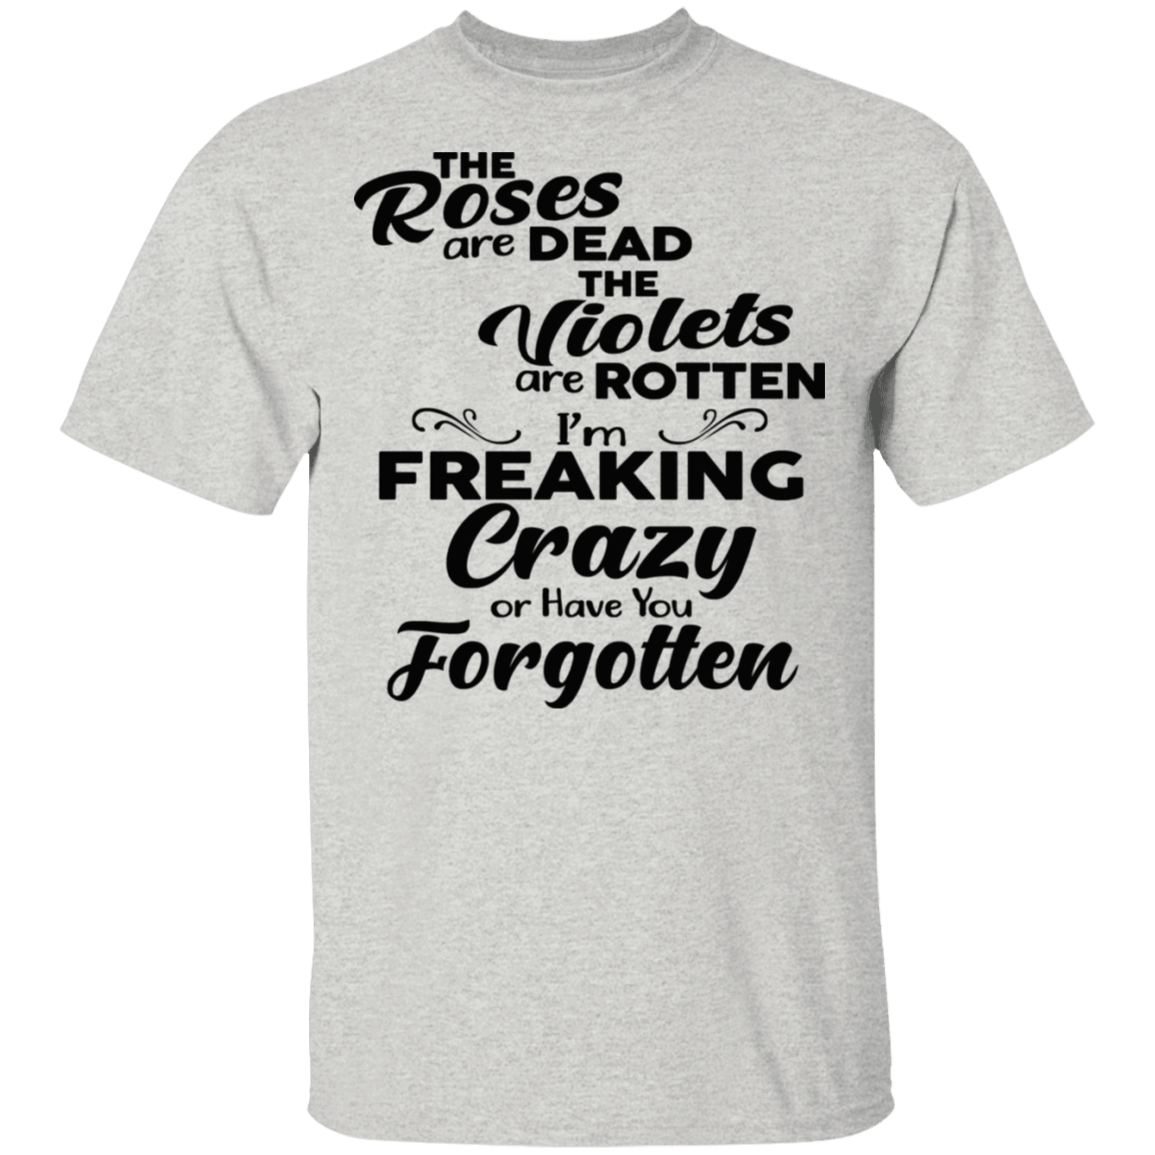 The Roses Are Dead The Violets Are Rotten I'm Freaking Crazy Or Have You Forgotten T-Shirts, Hoodies 22-2475-79929388-12568 - Tee Ript